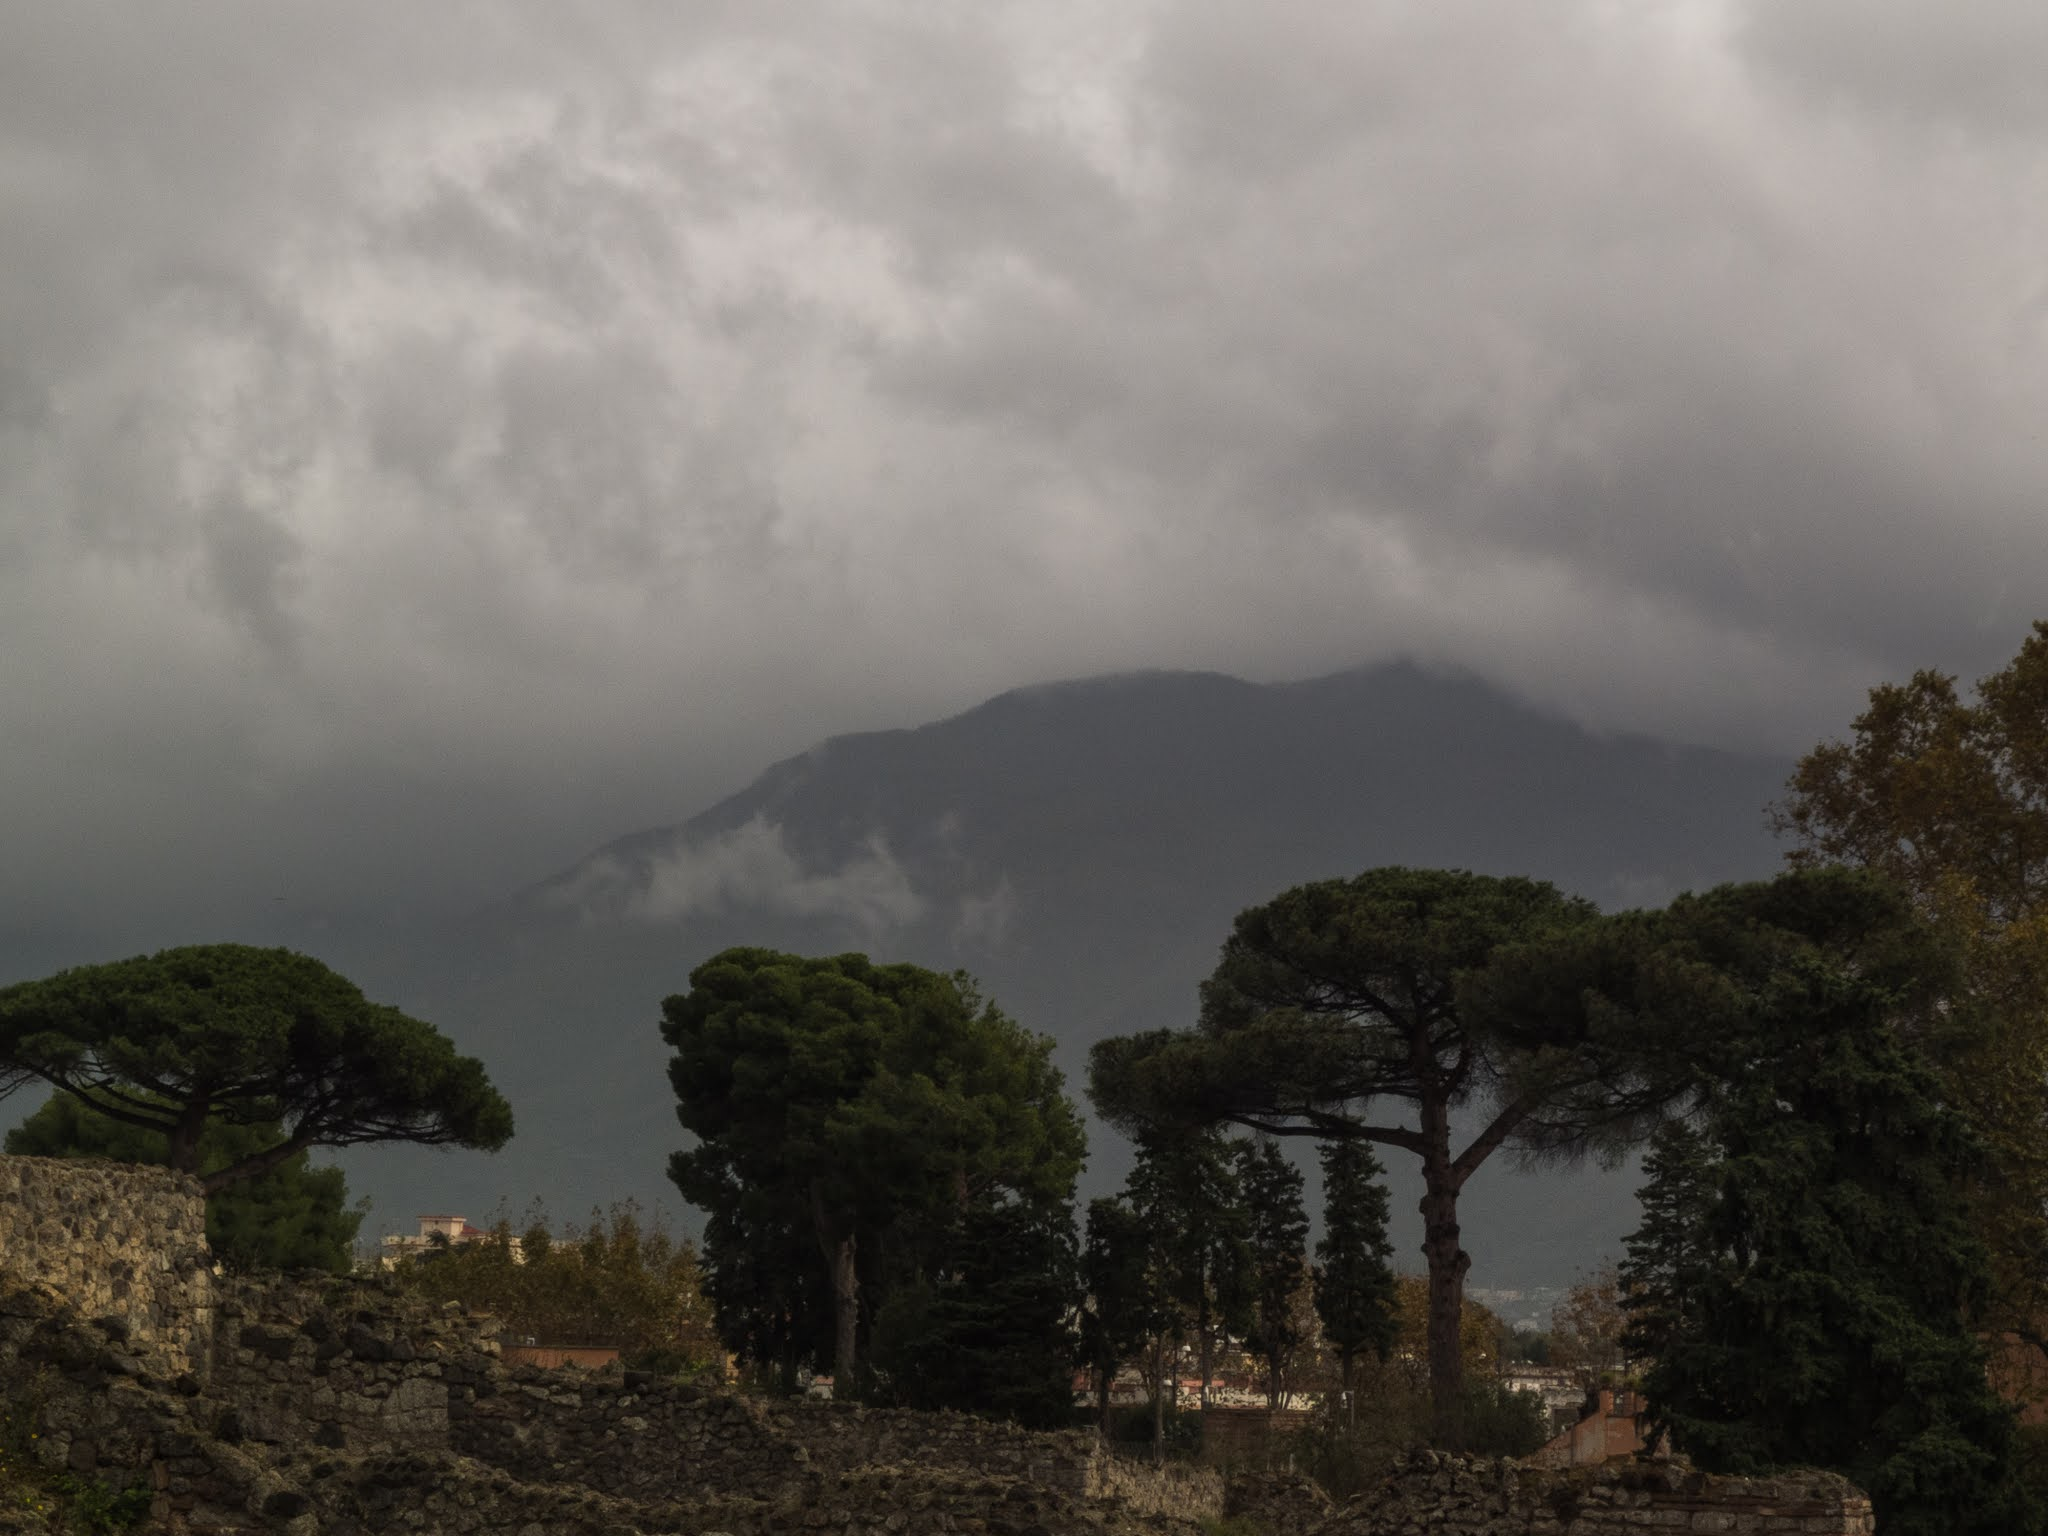 Evergreen trees in the ancient city of Pompeii with Mount Vesuvius in the background on a cloudy day.